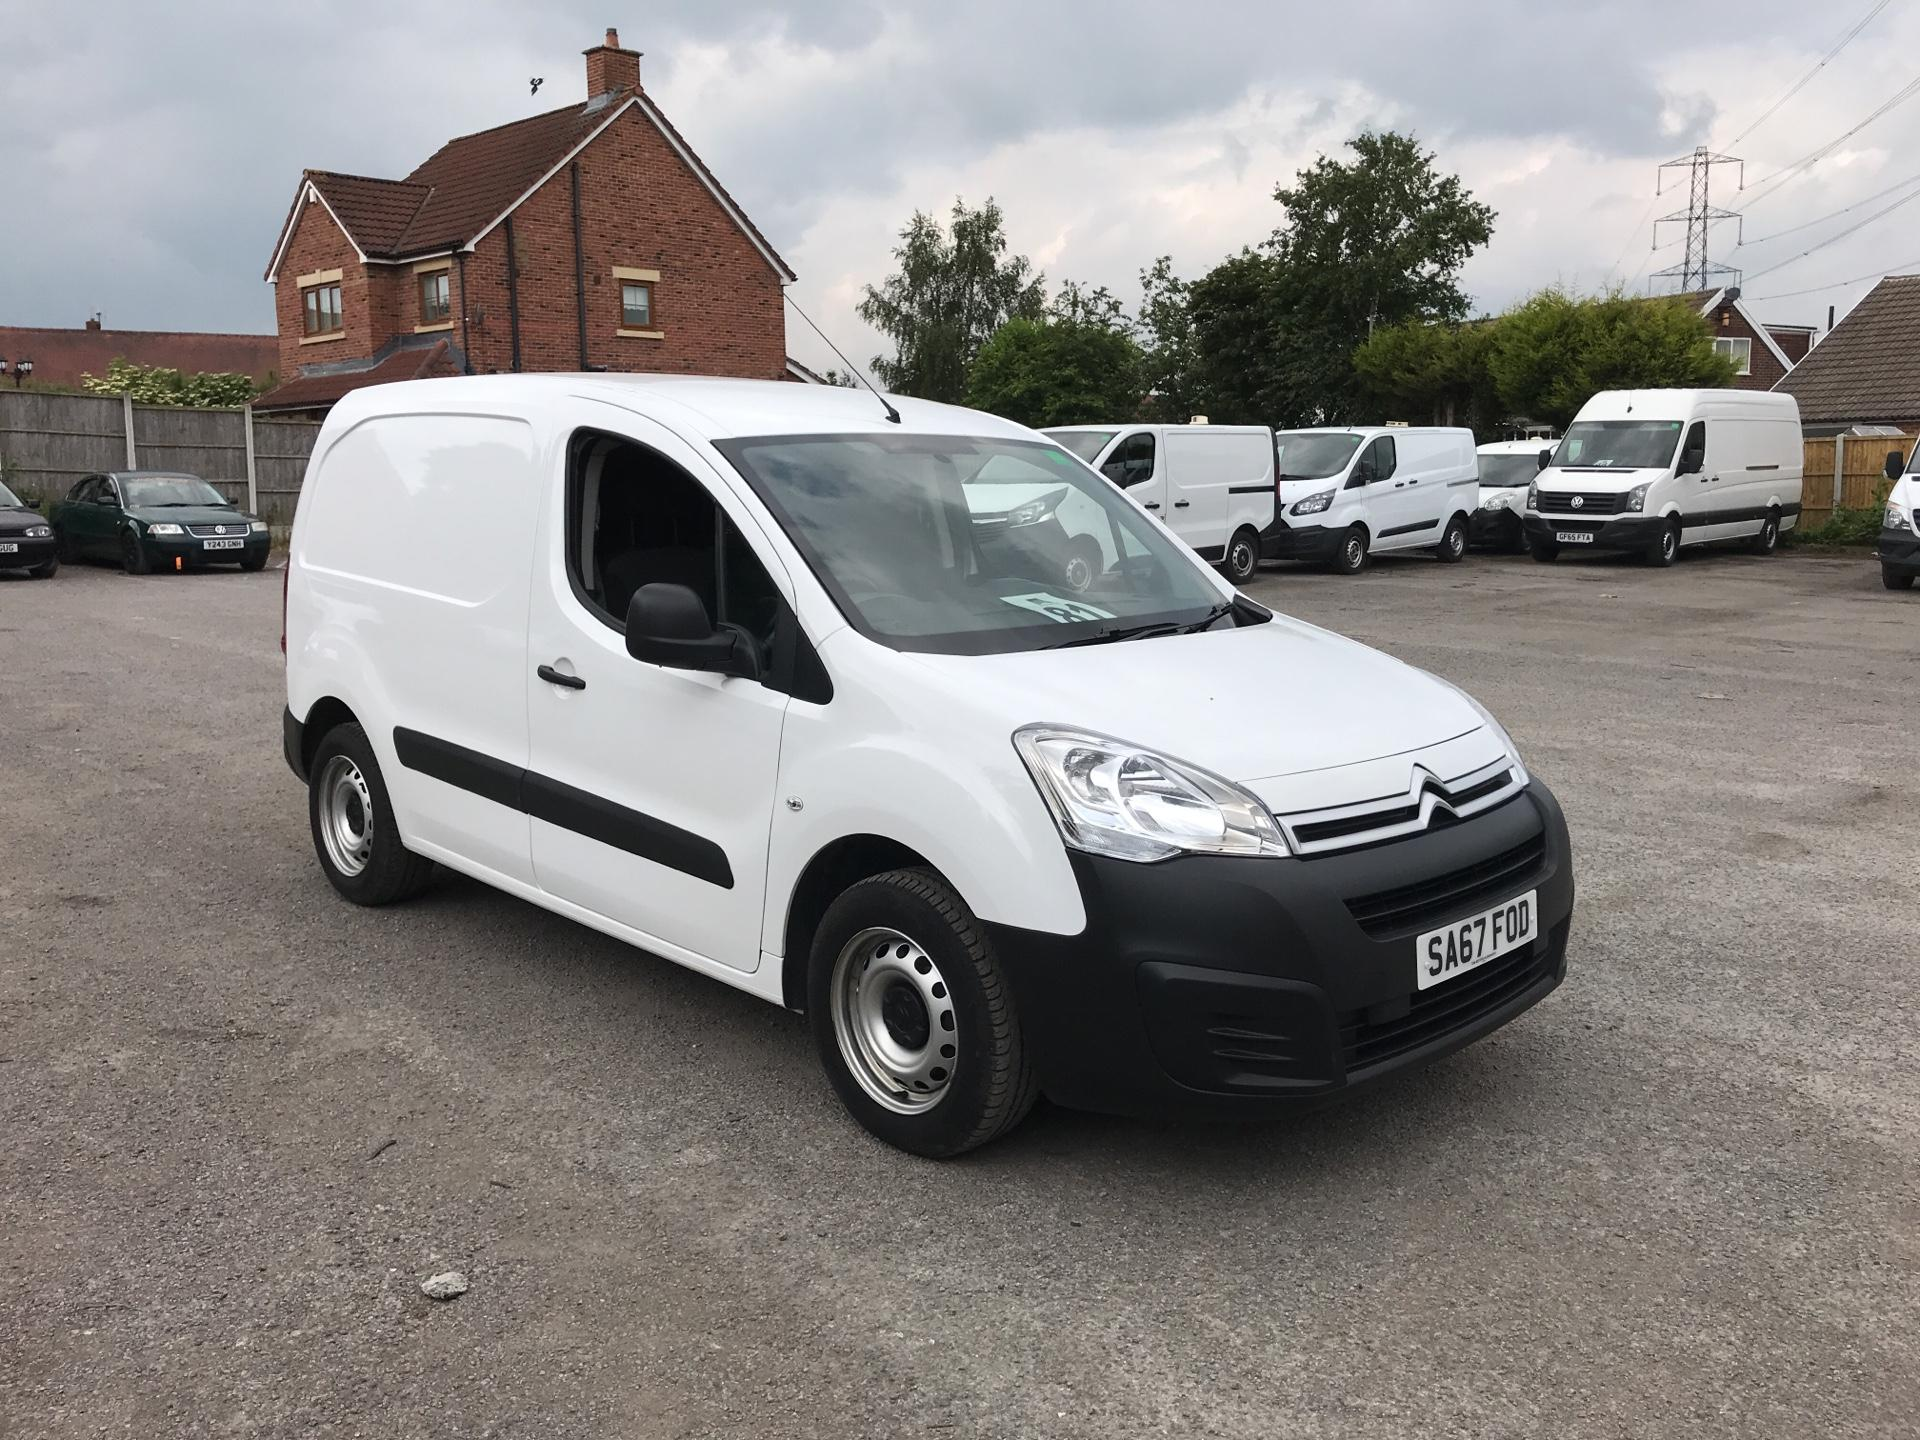 2017 Citroen Berlingo L1 1.6 Bluehdi 625Kg Lx 75Ps EURO 6 (SA67FOD)